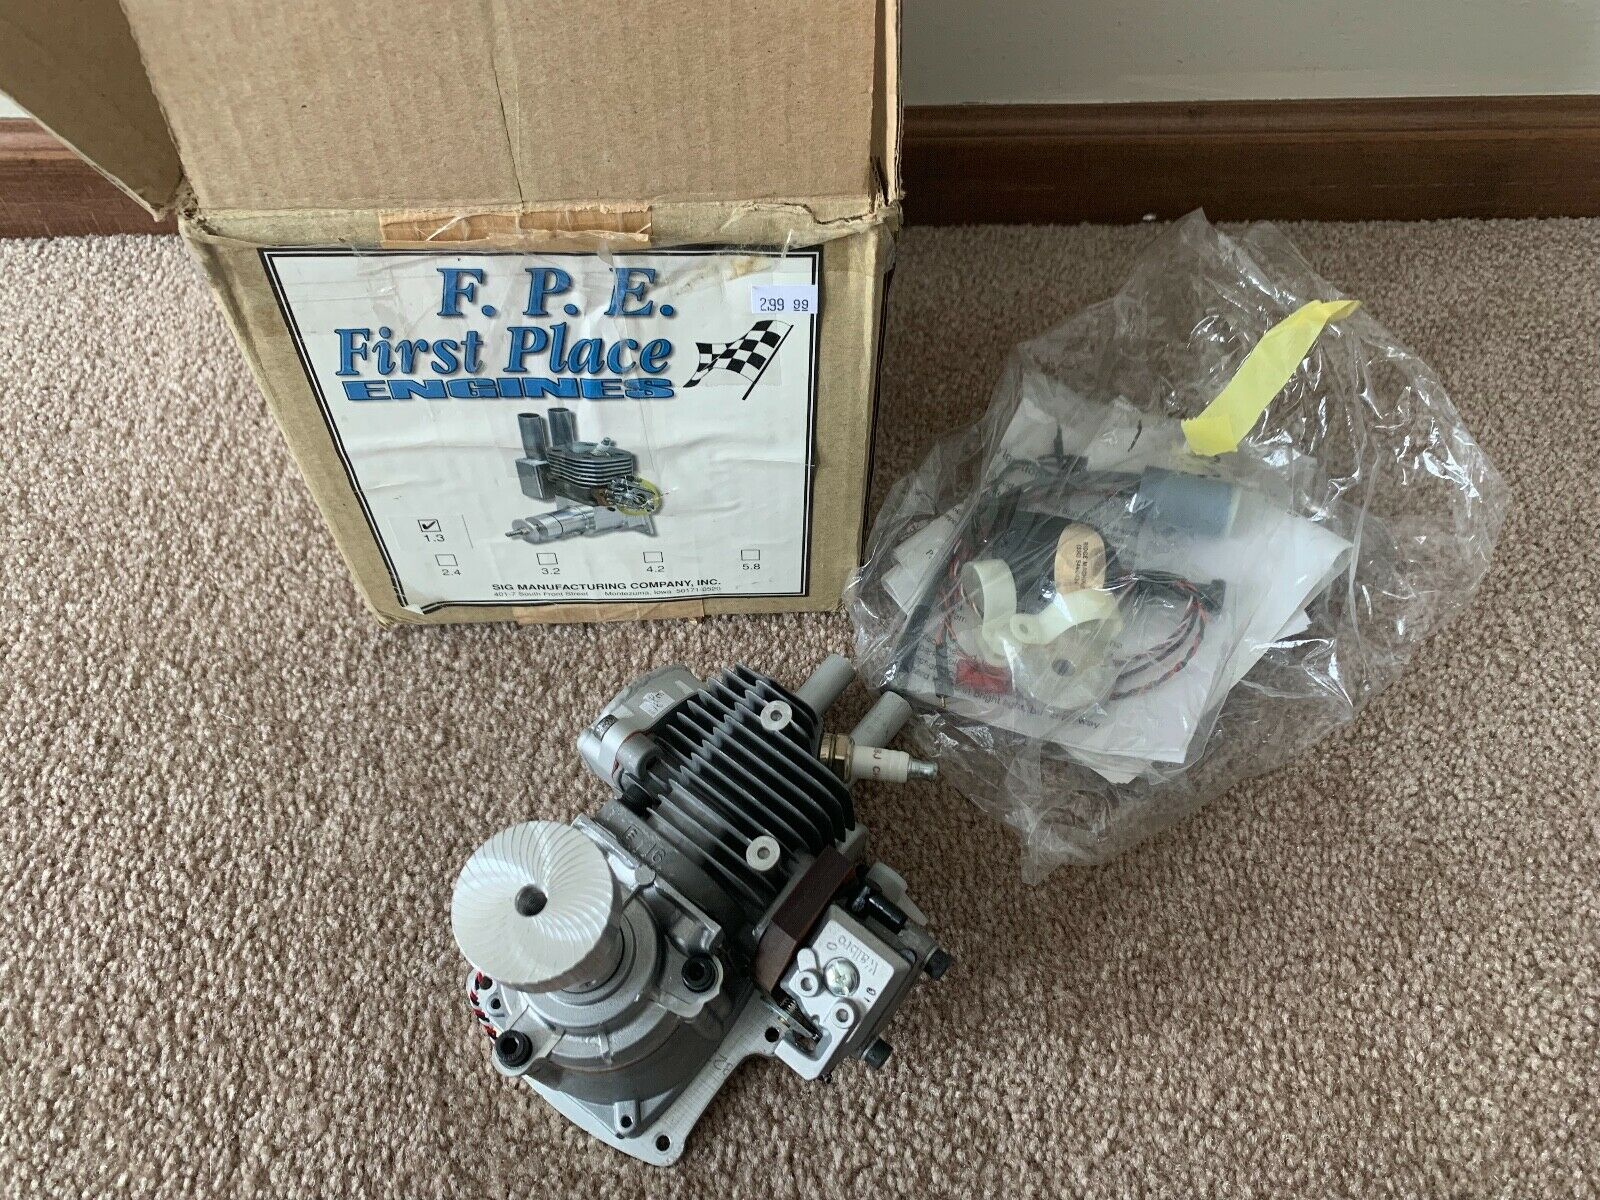 New New New F.P.E. FPE First Place Engines 1.3 20cc Gas RC R C Airplane Engine be05e4